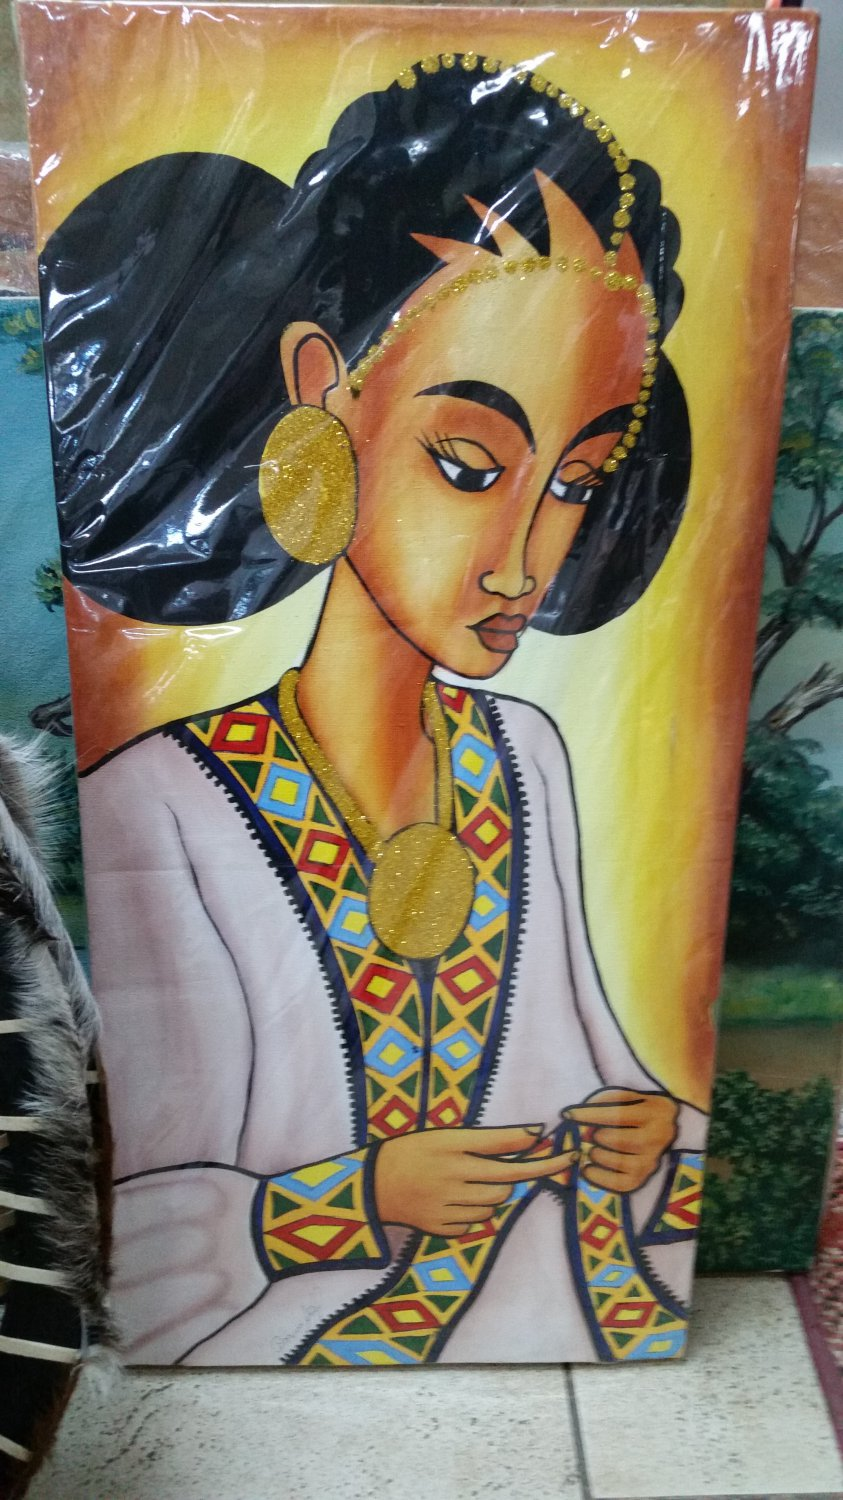 Ethiopian,Eritrean Habeshan, African Drawings and Arts Free shipping world wide  5